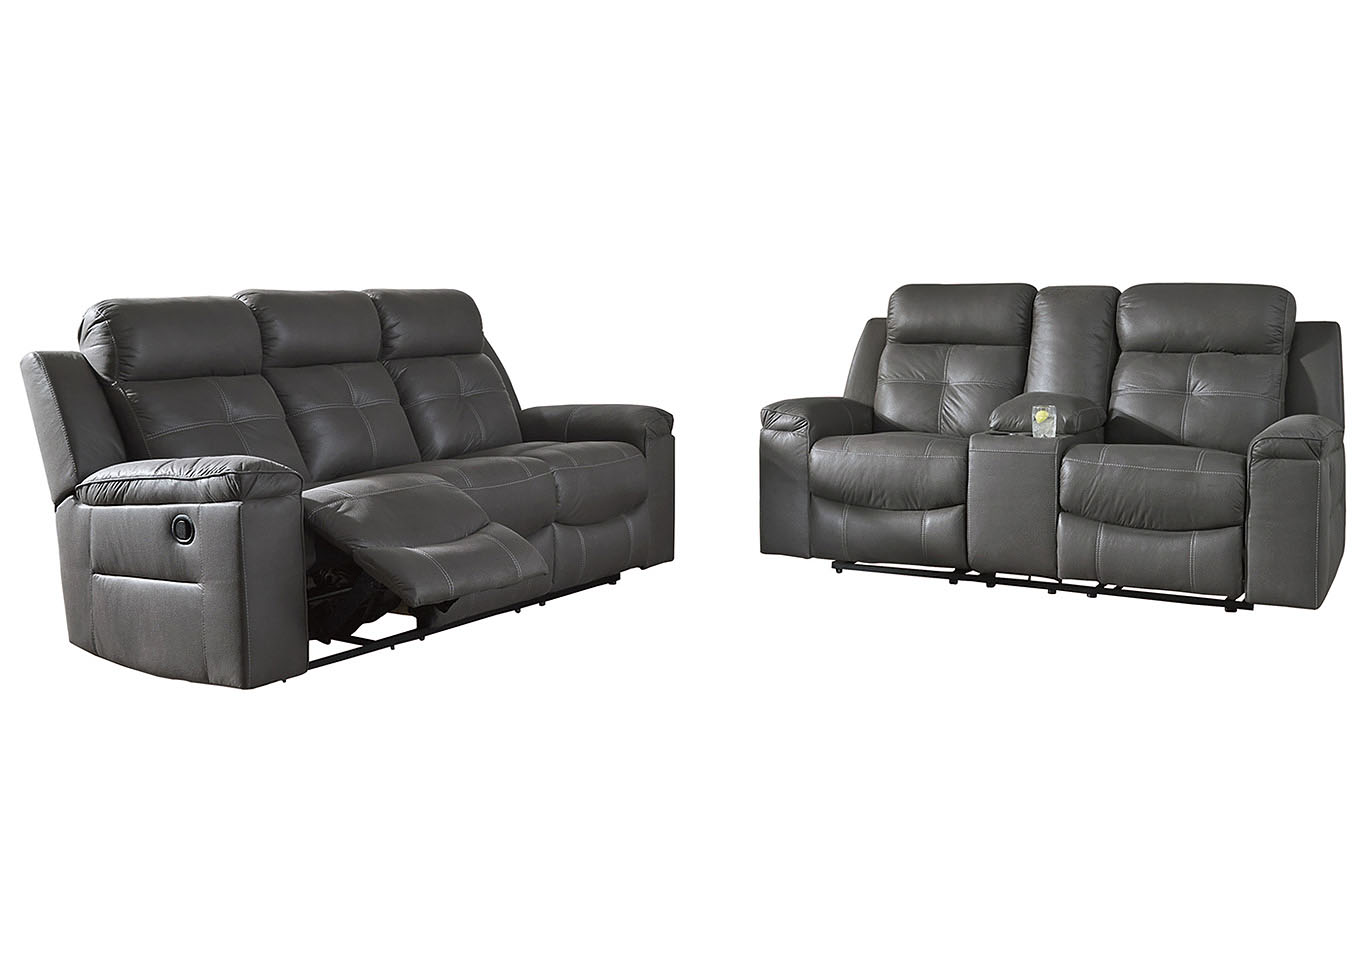 Tampa Furniture Outlet Jesolo Dark Gray Reclining Sofa Loveseat